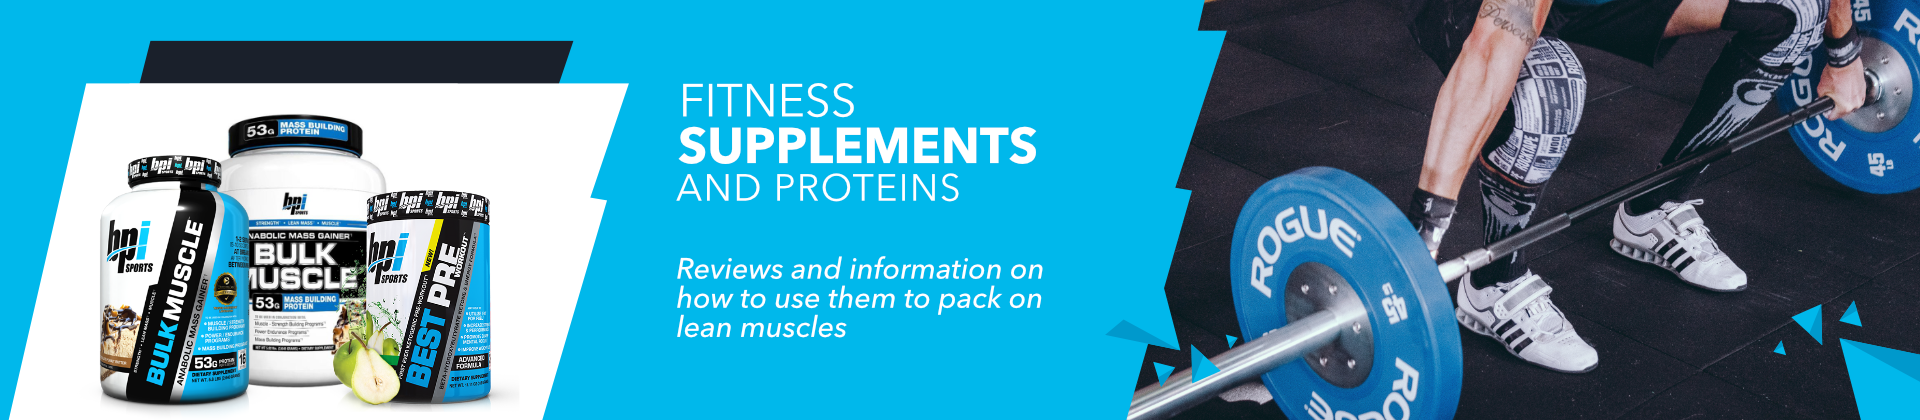 fitness supplements, protein powders, creatine, fitness blog, lean muscles